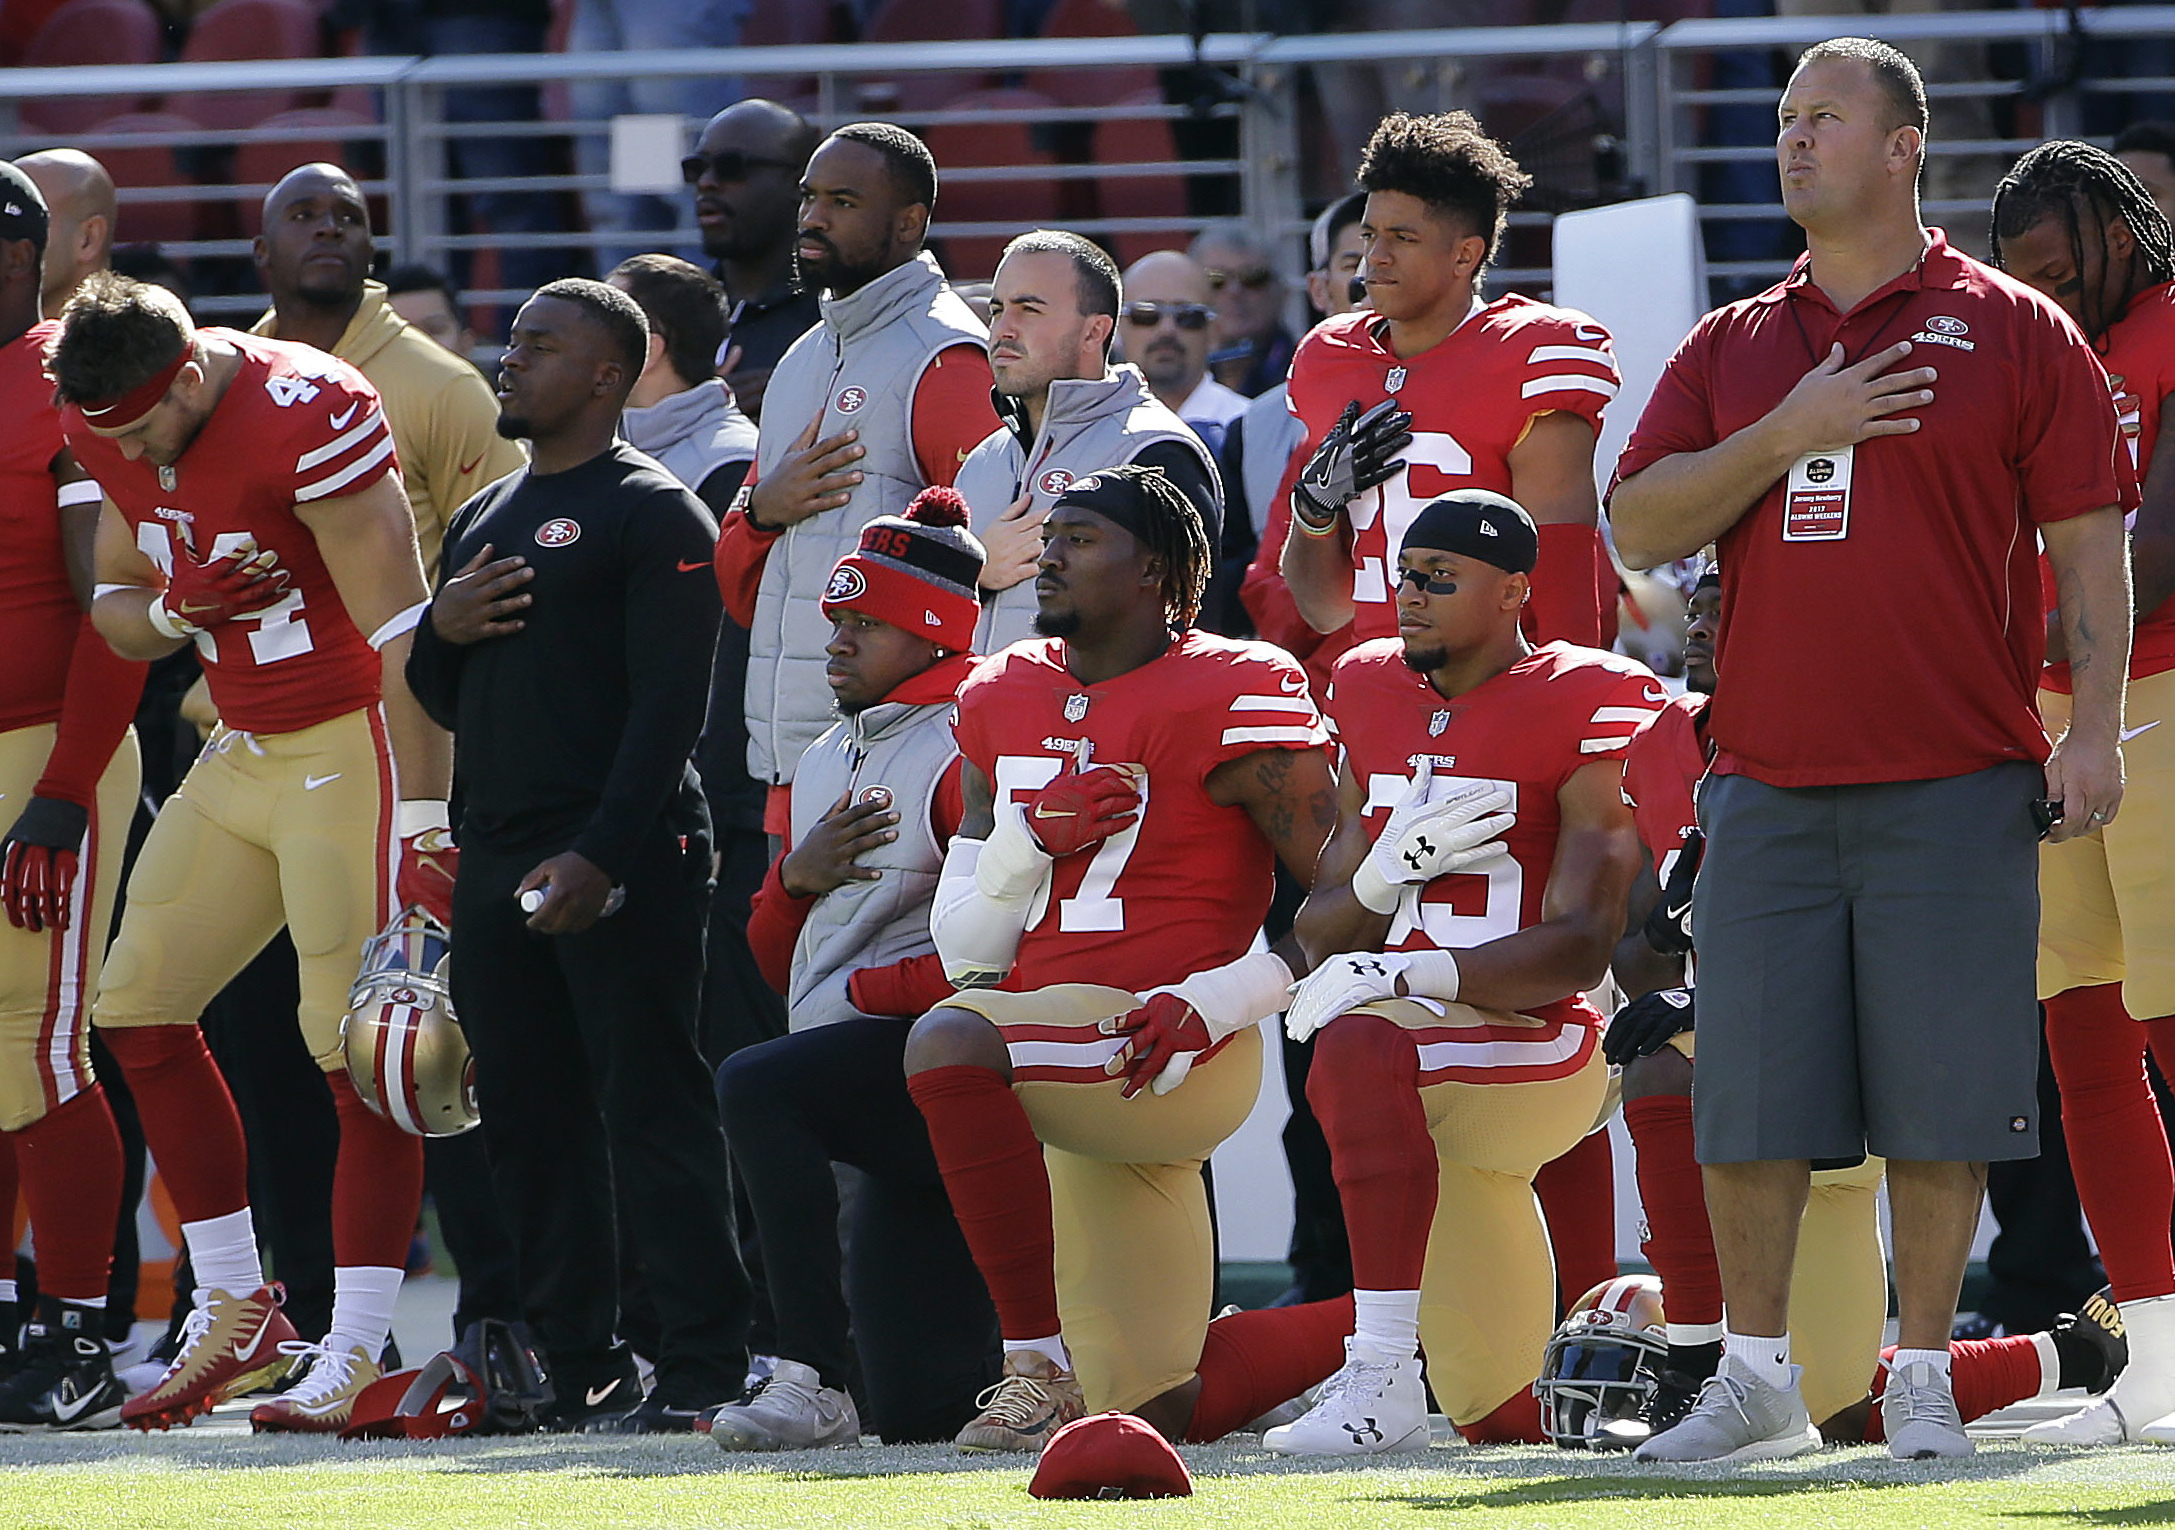 997aa58b158 NFL take-a-knee protests boil down to two liberal cities - Washington Times